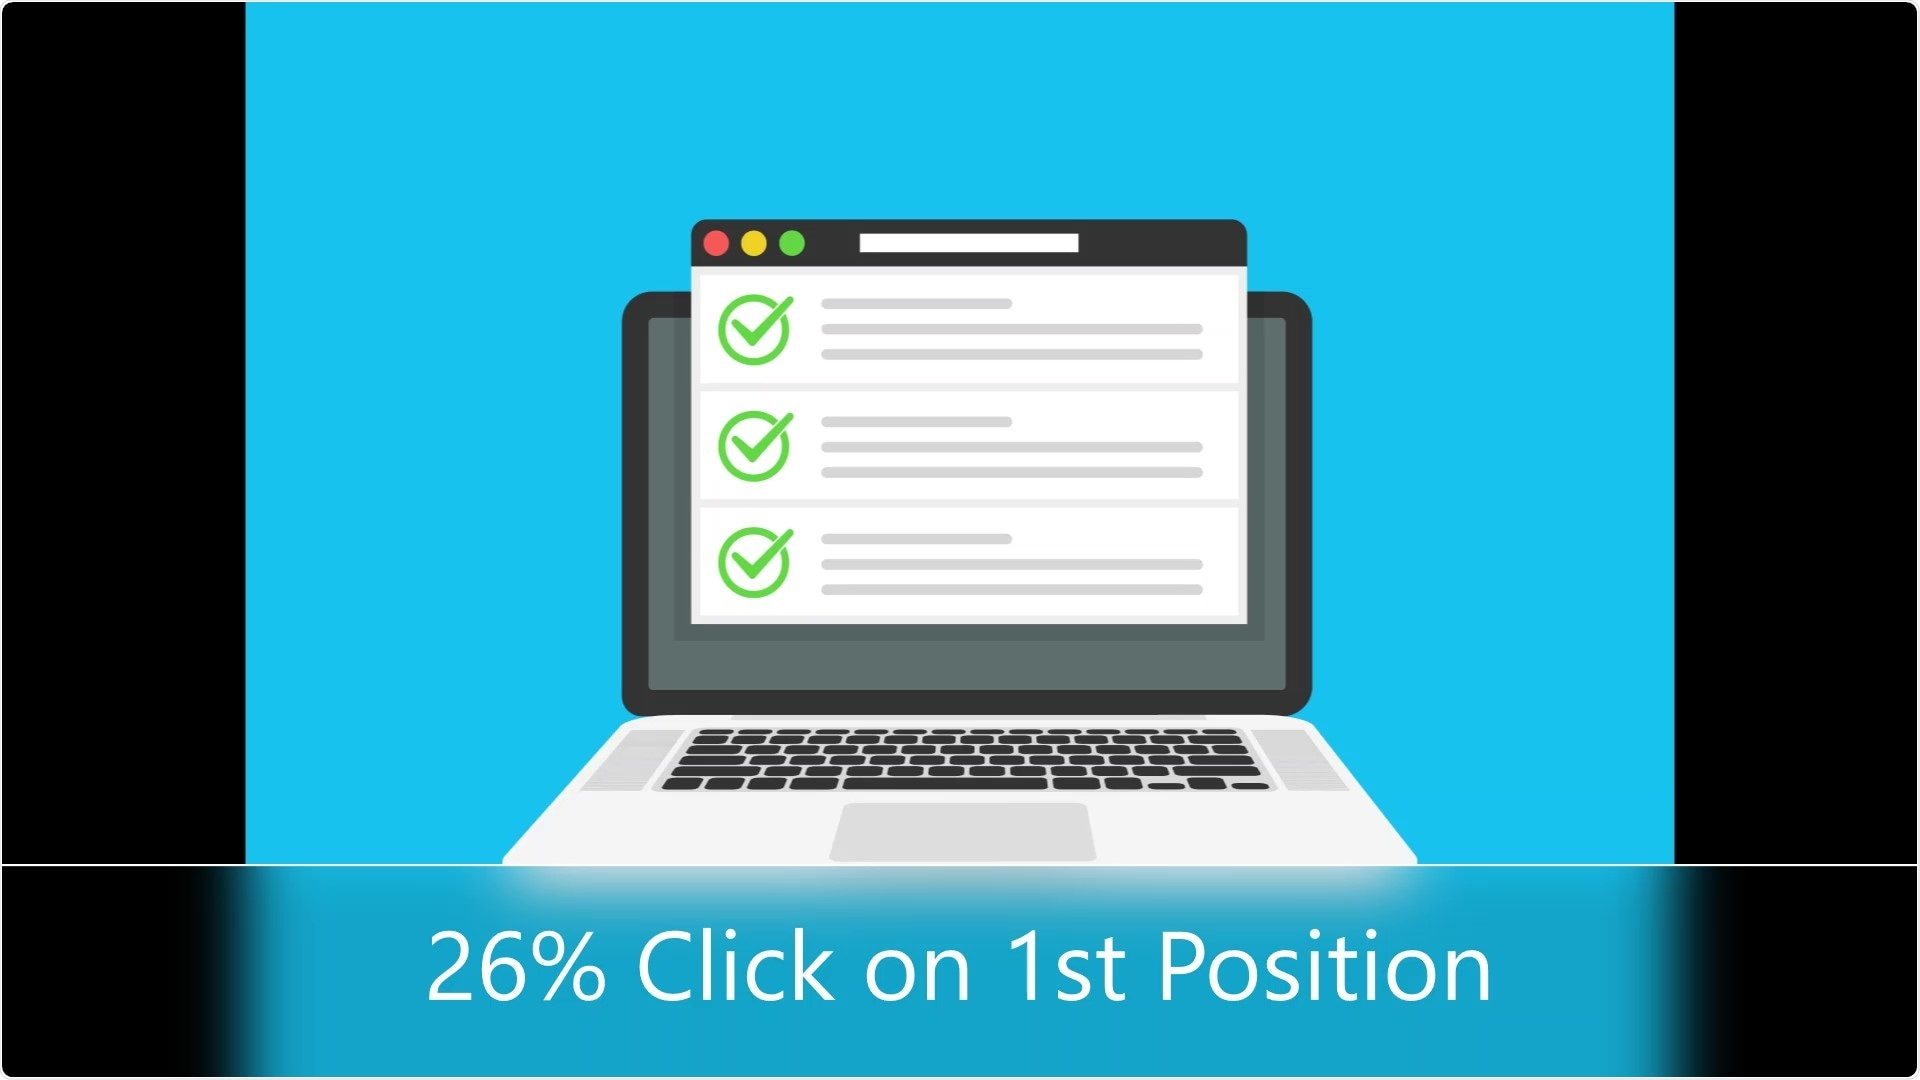 26% of searchers click on the 1st result